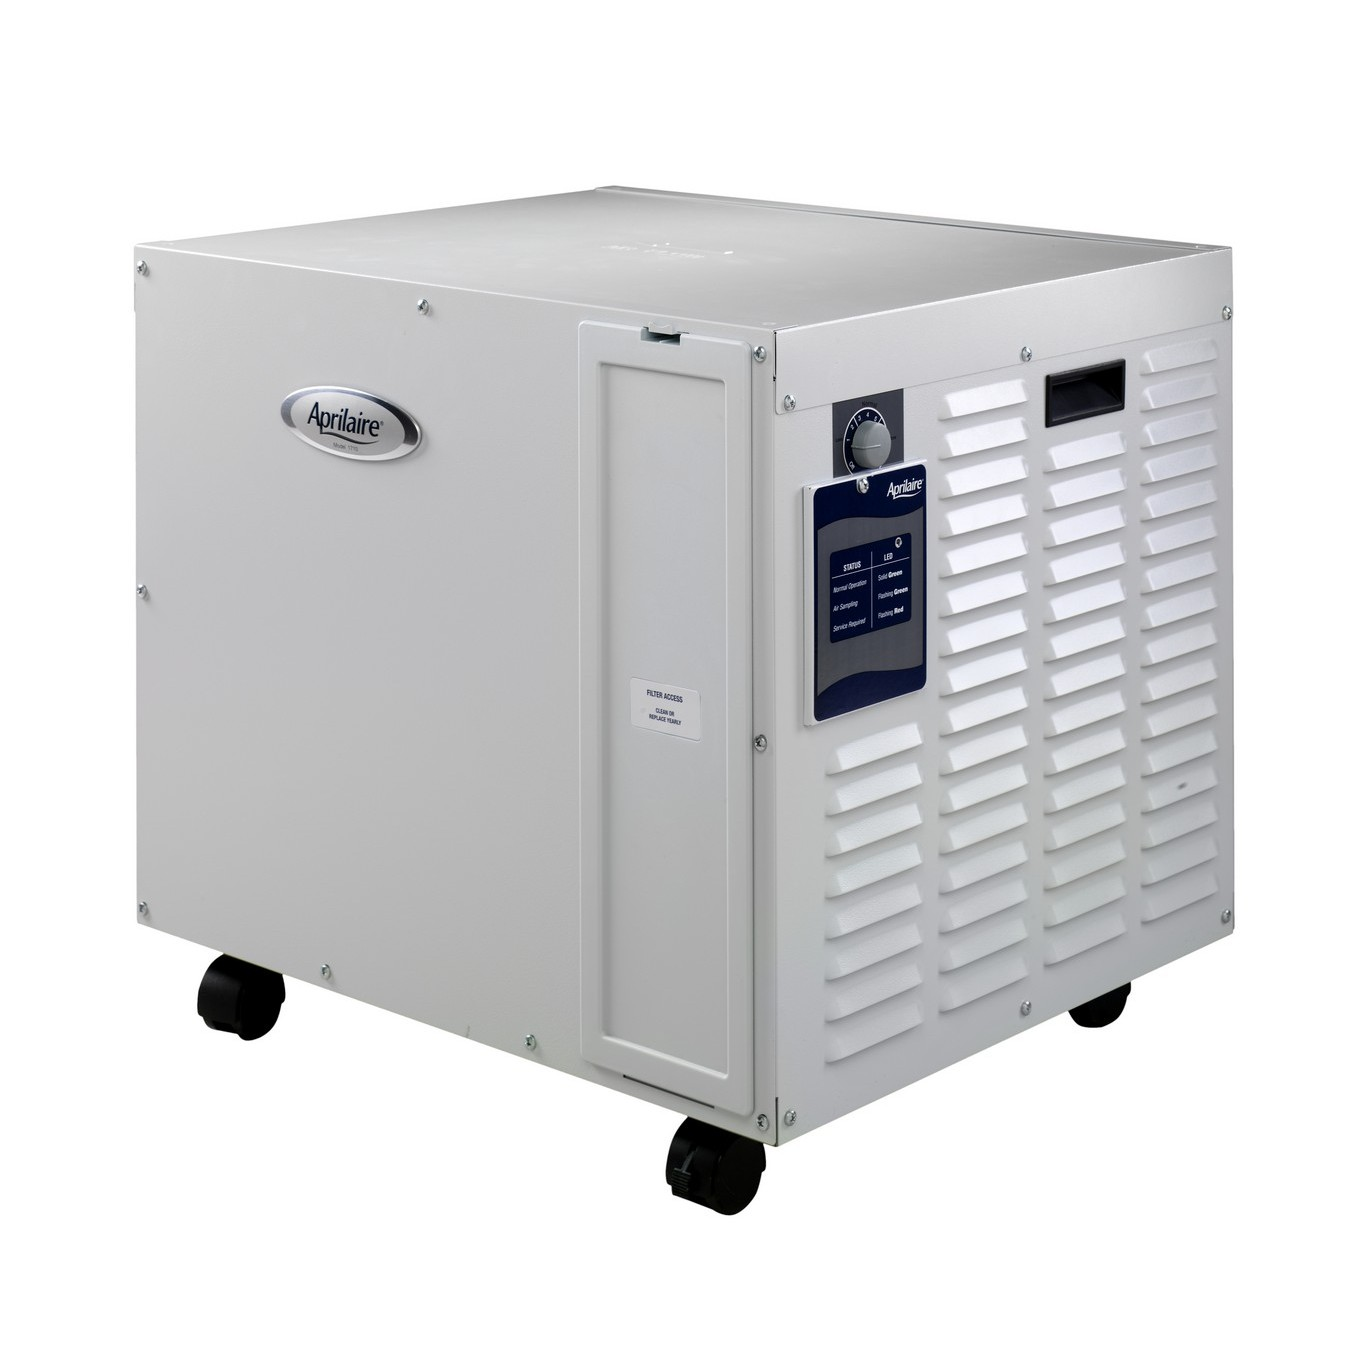 Aprilaire 1710 Whole Basement Portable Dehumidifier